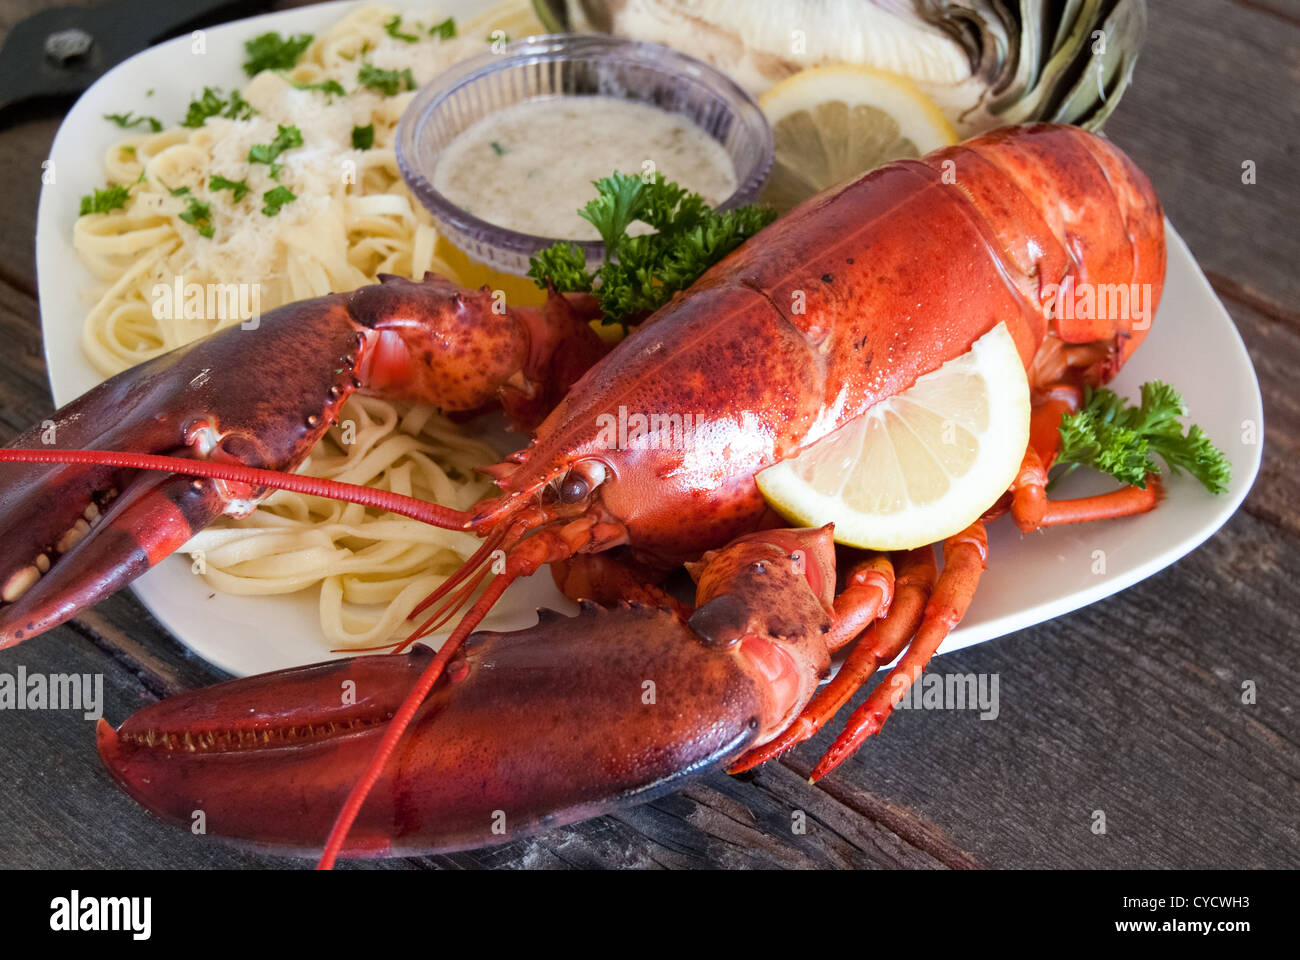 A Cooked Maine Lobster Dinner Stock Photo 51299951 Alamy